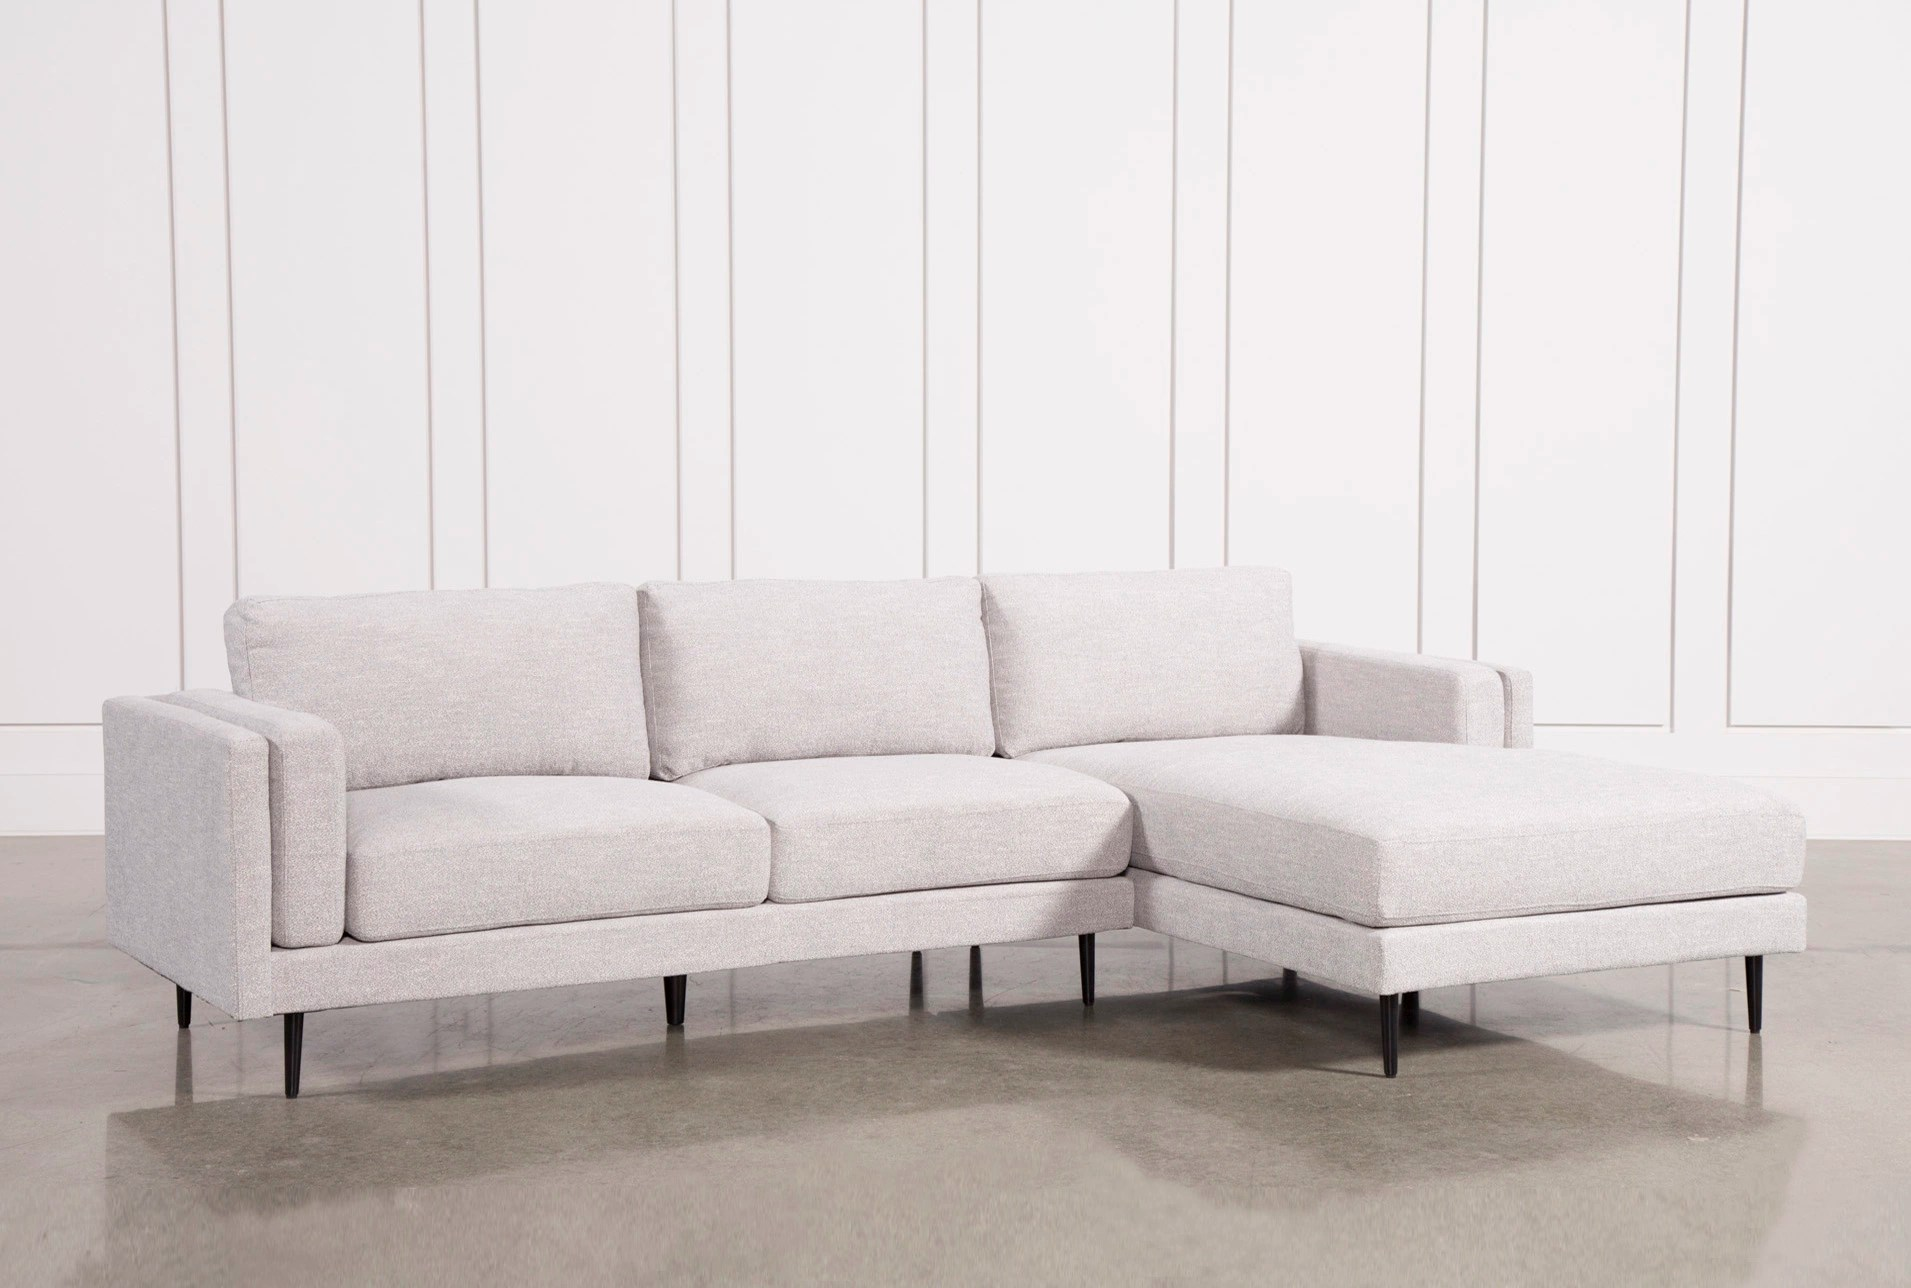 light furniture for living room decorating ideas beige couch aquarius grey 2 piece sectional w raf chaise spaces large view